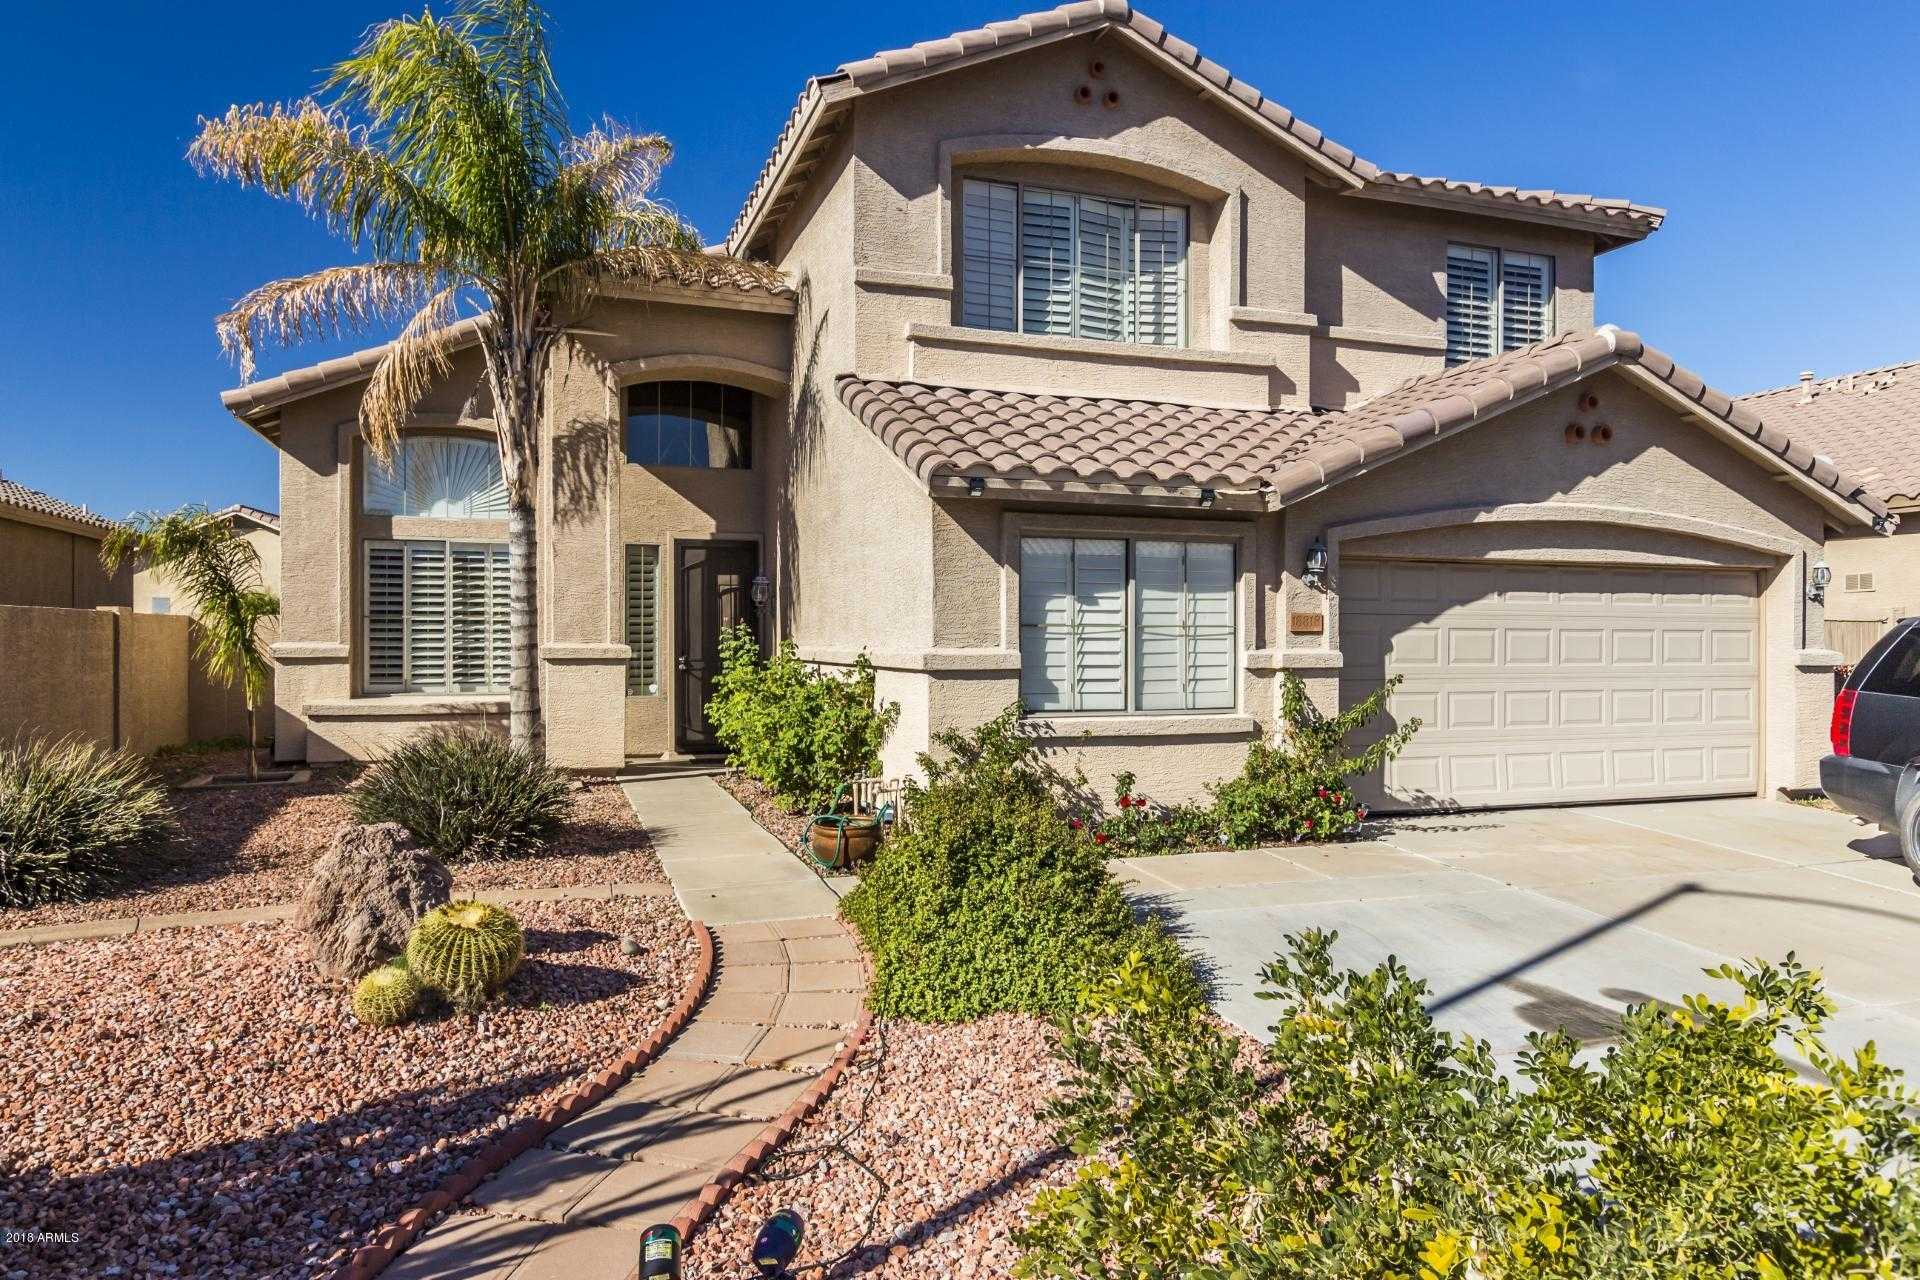 $399,000 - 6Br/3Ba - Home for Sale in Coppercrest, Glendale